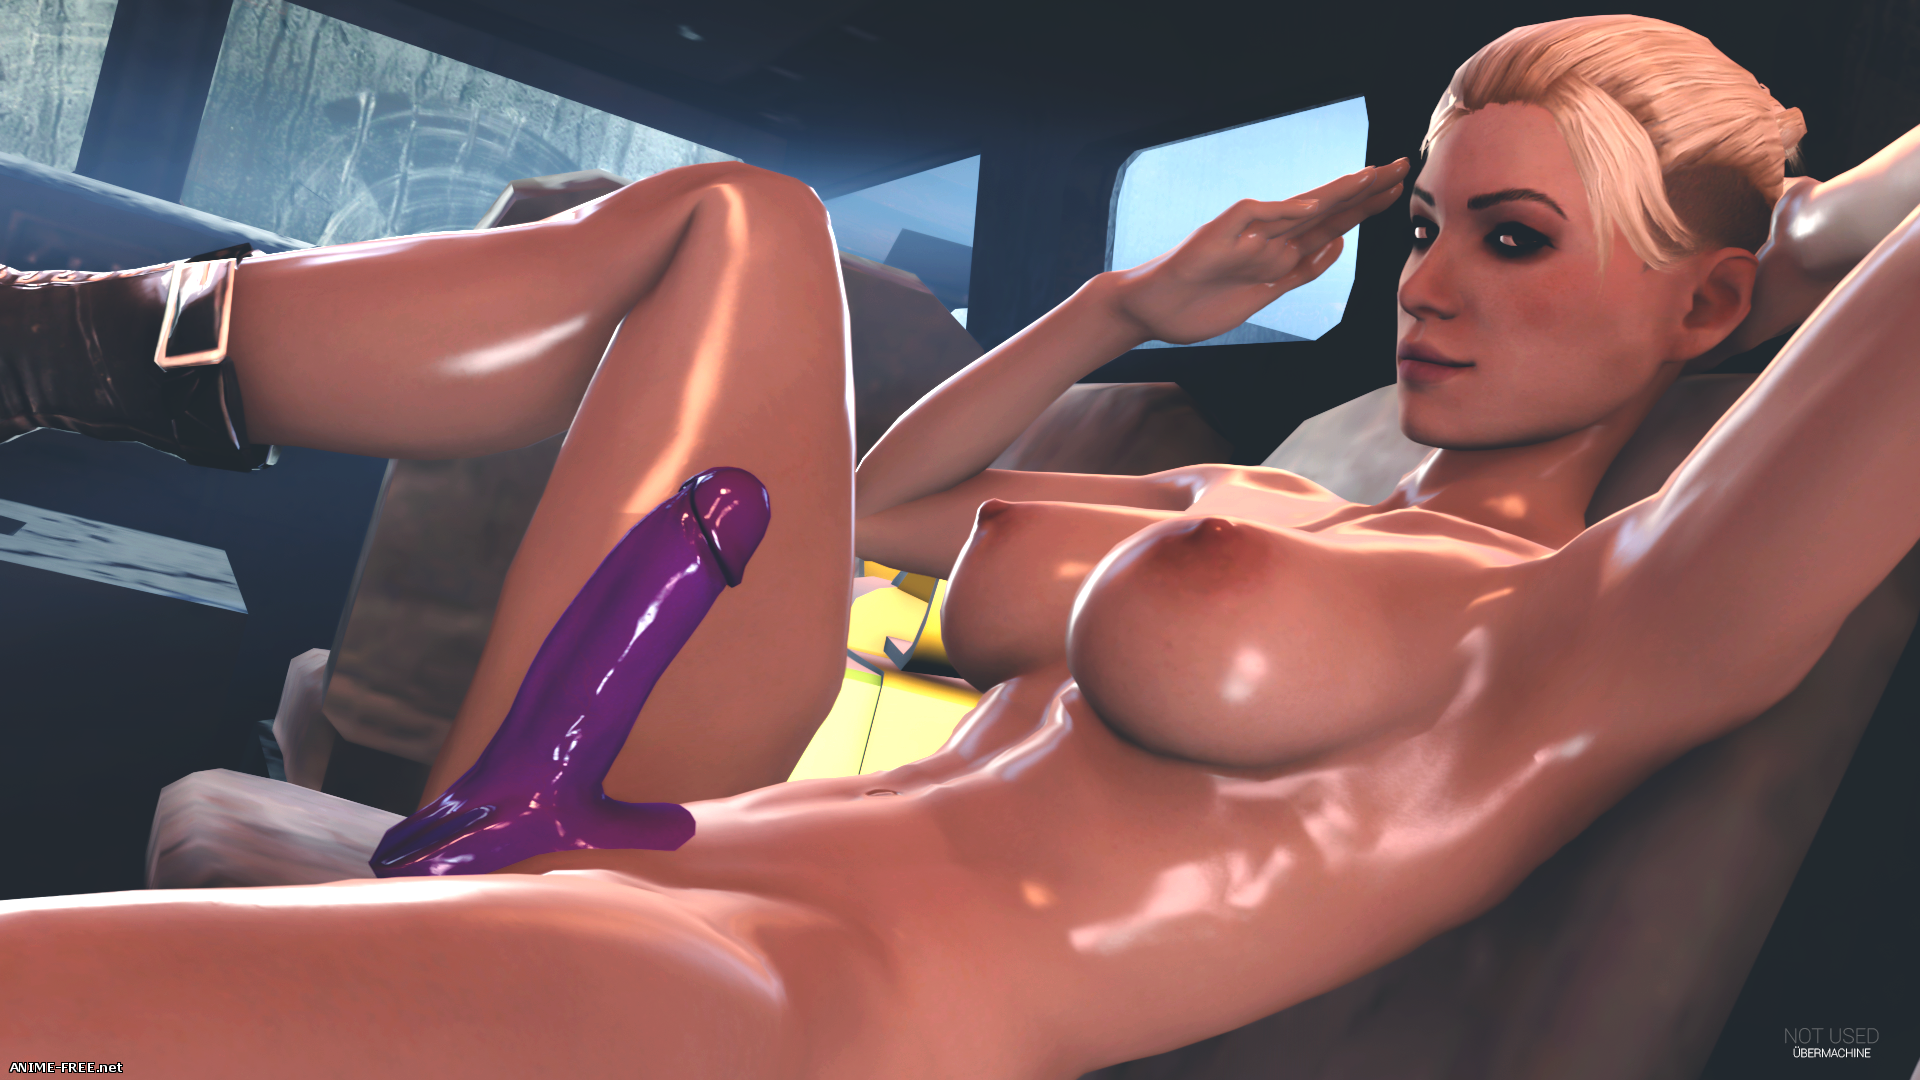 UbermachineWorks (Collection) [Uncen] [3DCG, Animation] [GIF,PNG,JPG,WebM] Hentai ART